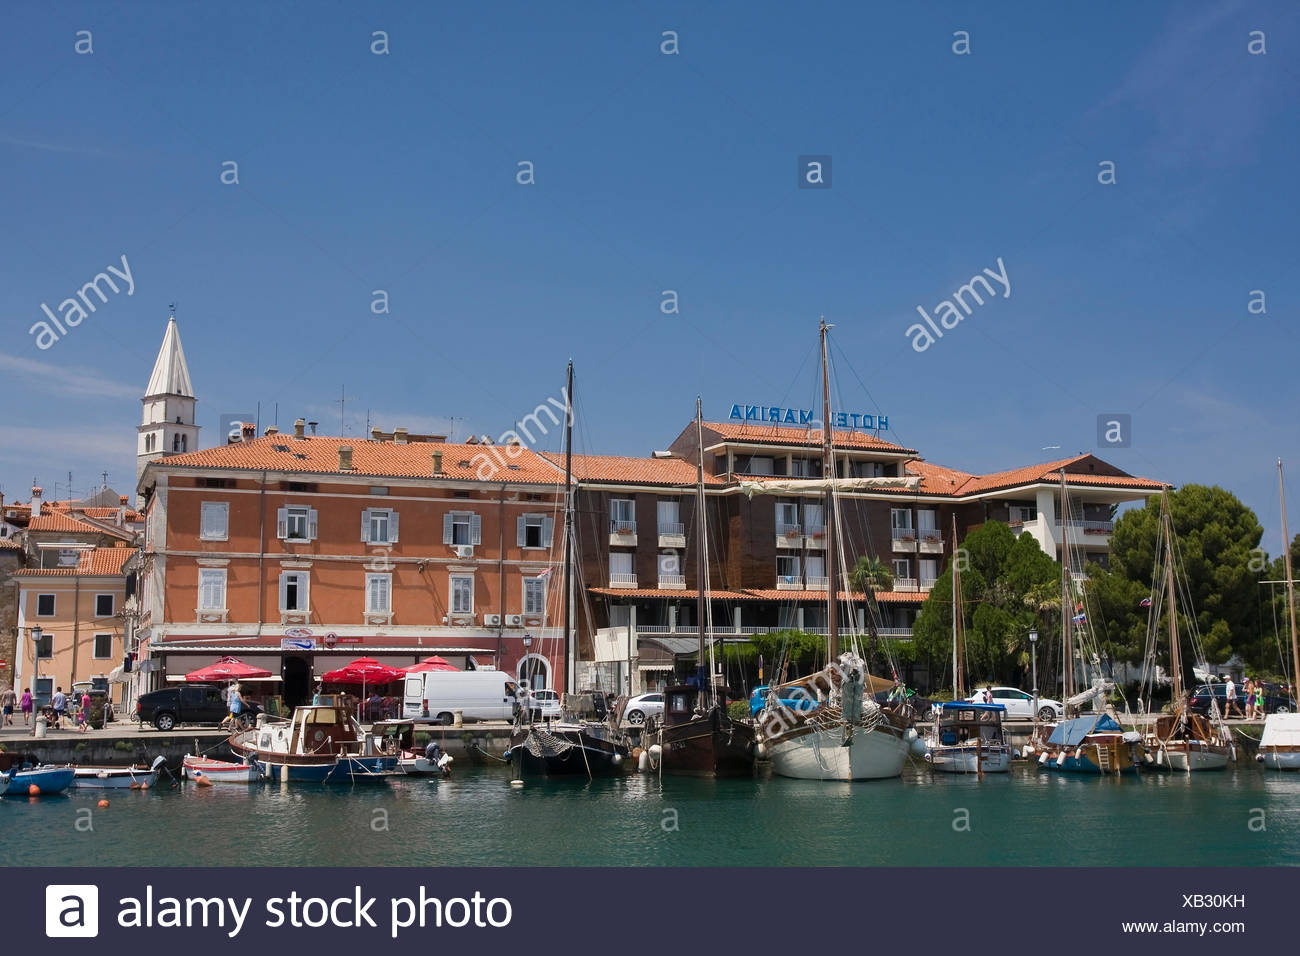 Adriatic, boats, Europe, harbours, ports, harbour, port, Istria, Izola, yachts, yacht harbour, Marina, motorboats, Mediterranean - Stock Image